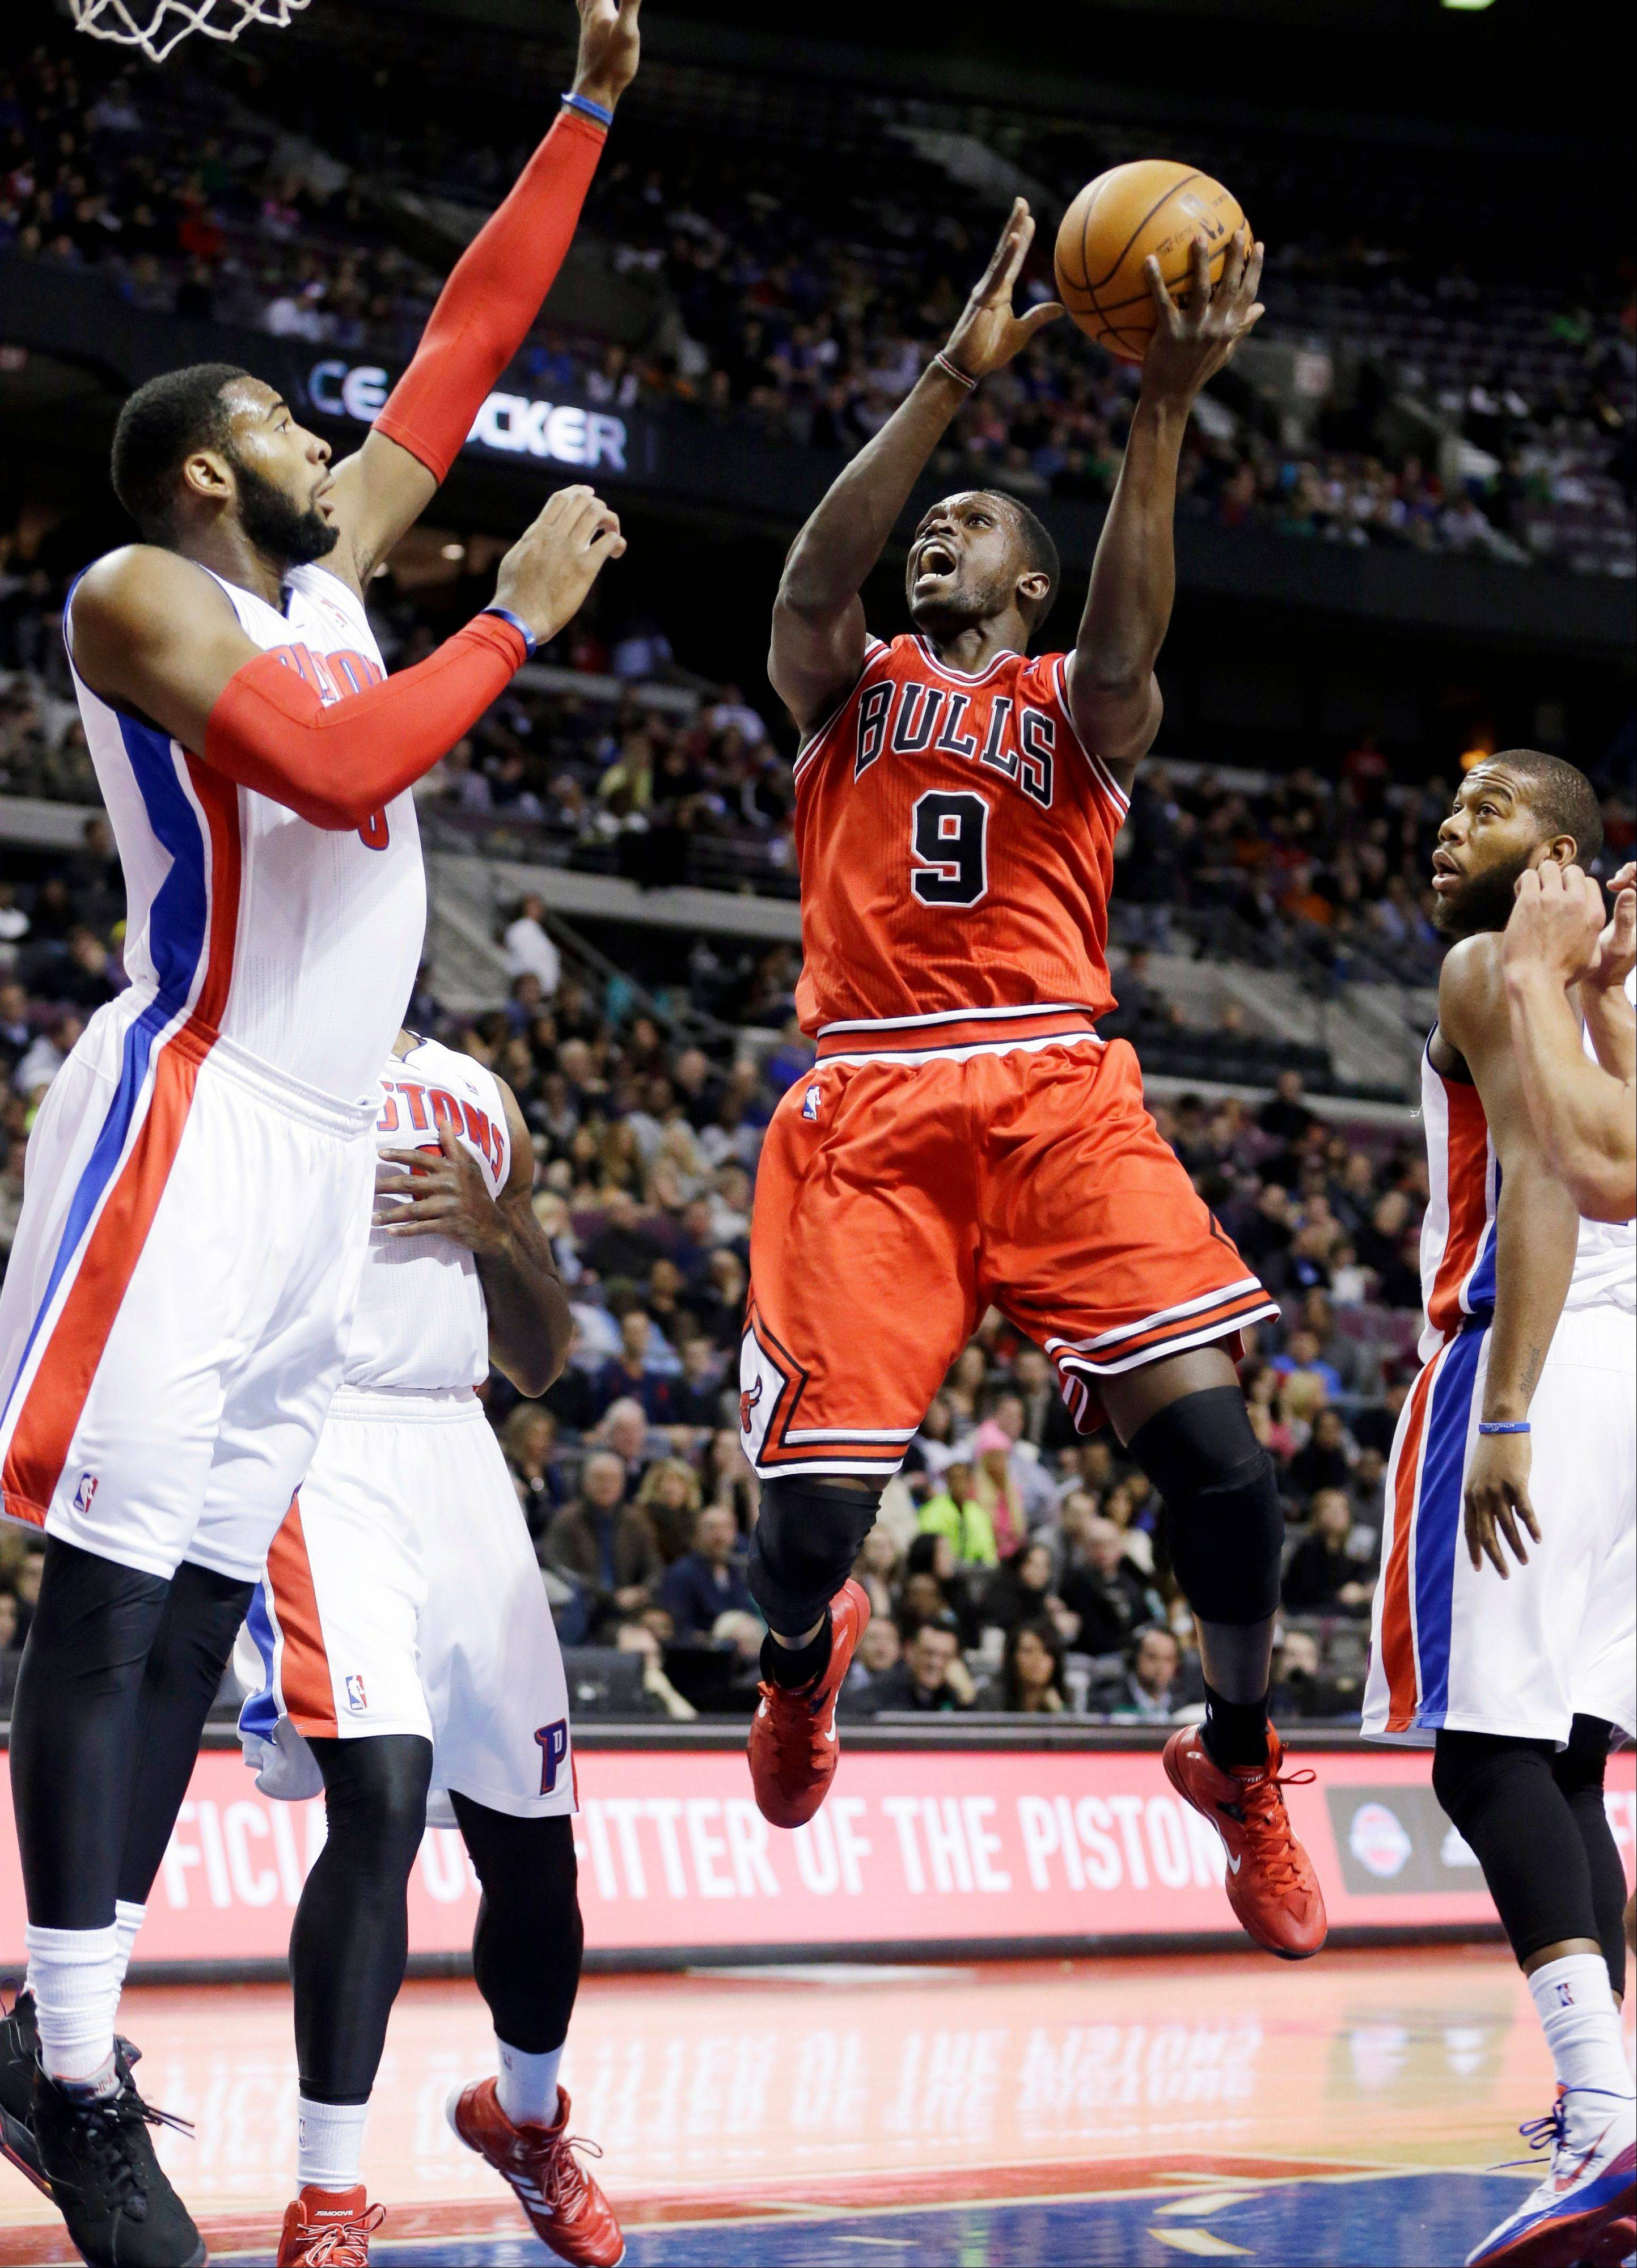 Bulls forward Luol Deng shoots over the defense of Detroit Pistons center Andre Drummond during the first quarter of an NBA basketball game in Auburn Hills, Mich., Wednesday, Nov. 27, 2013.